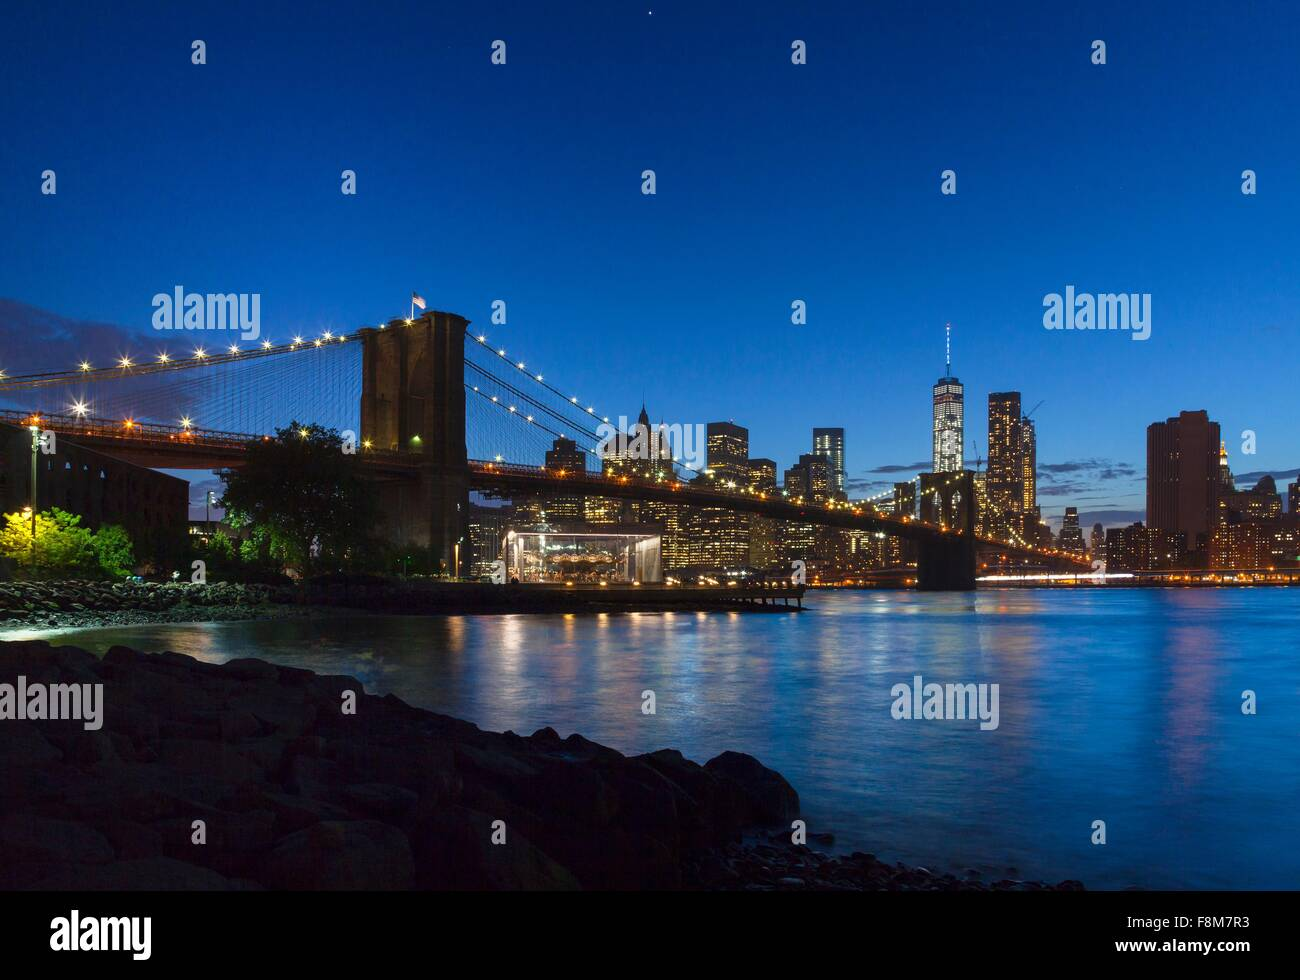 Manhattan financial district and Brooklyn bridge at night, New York, USA - Stock Image